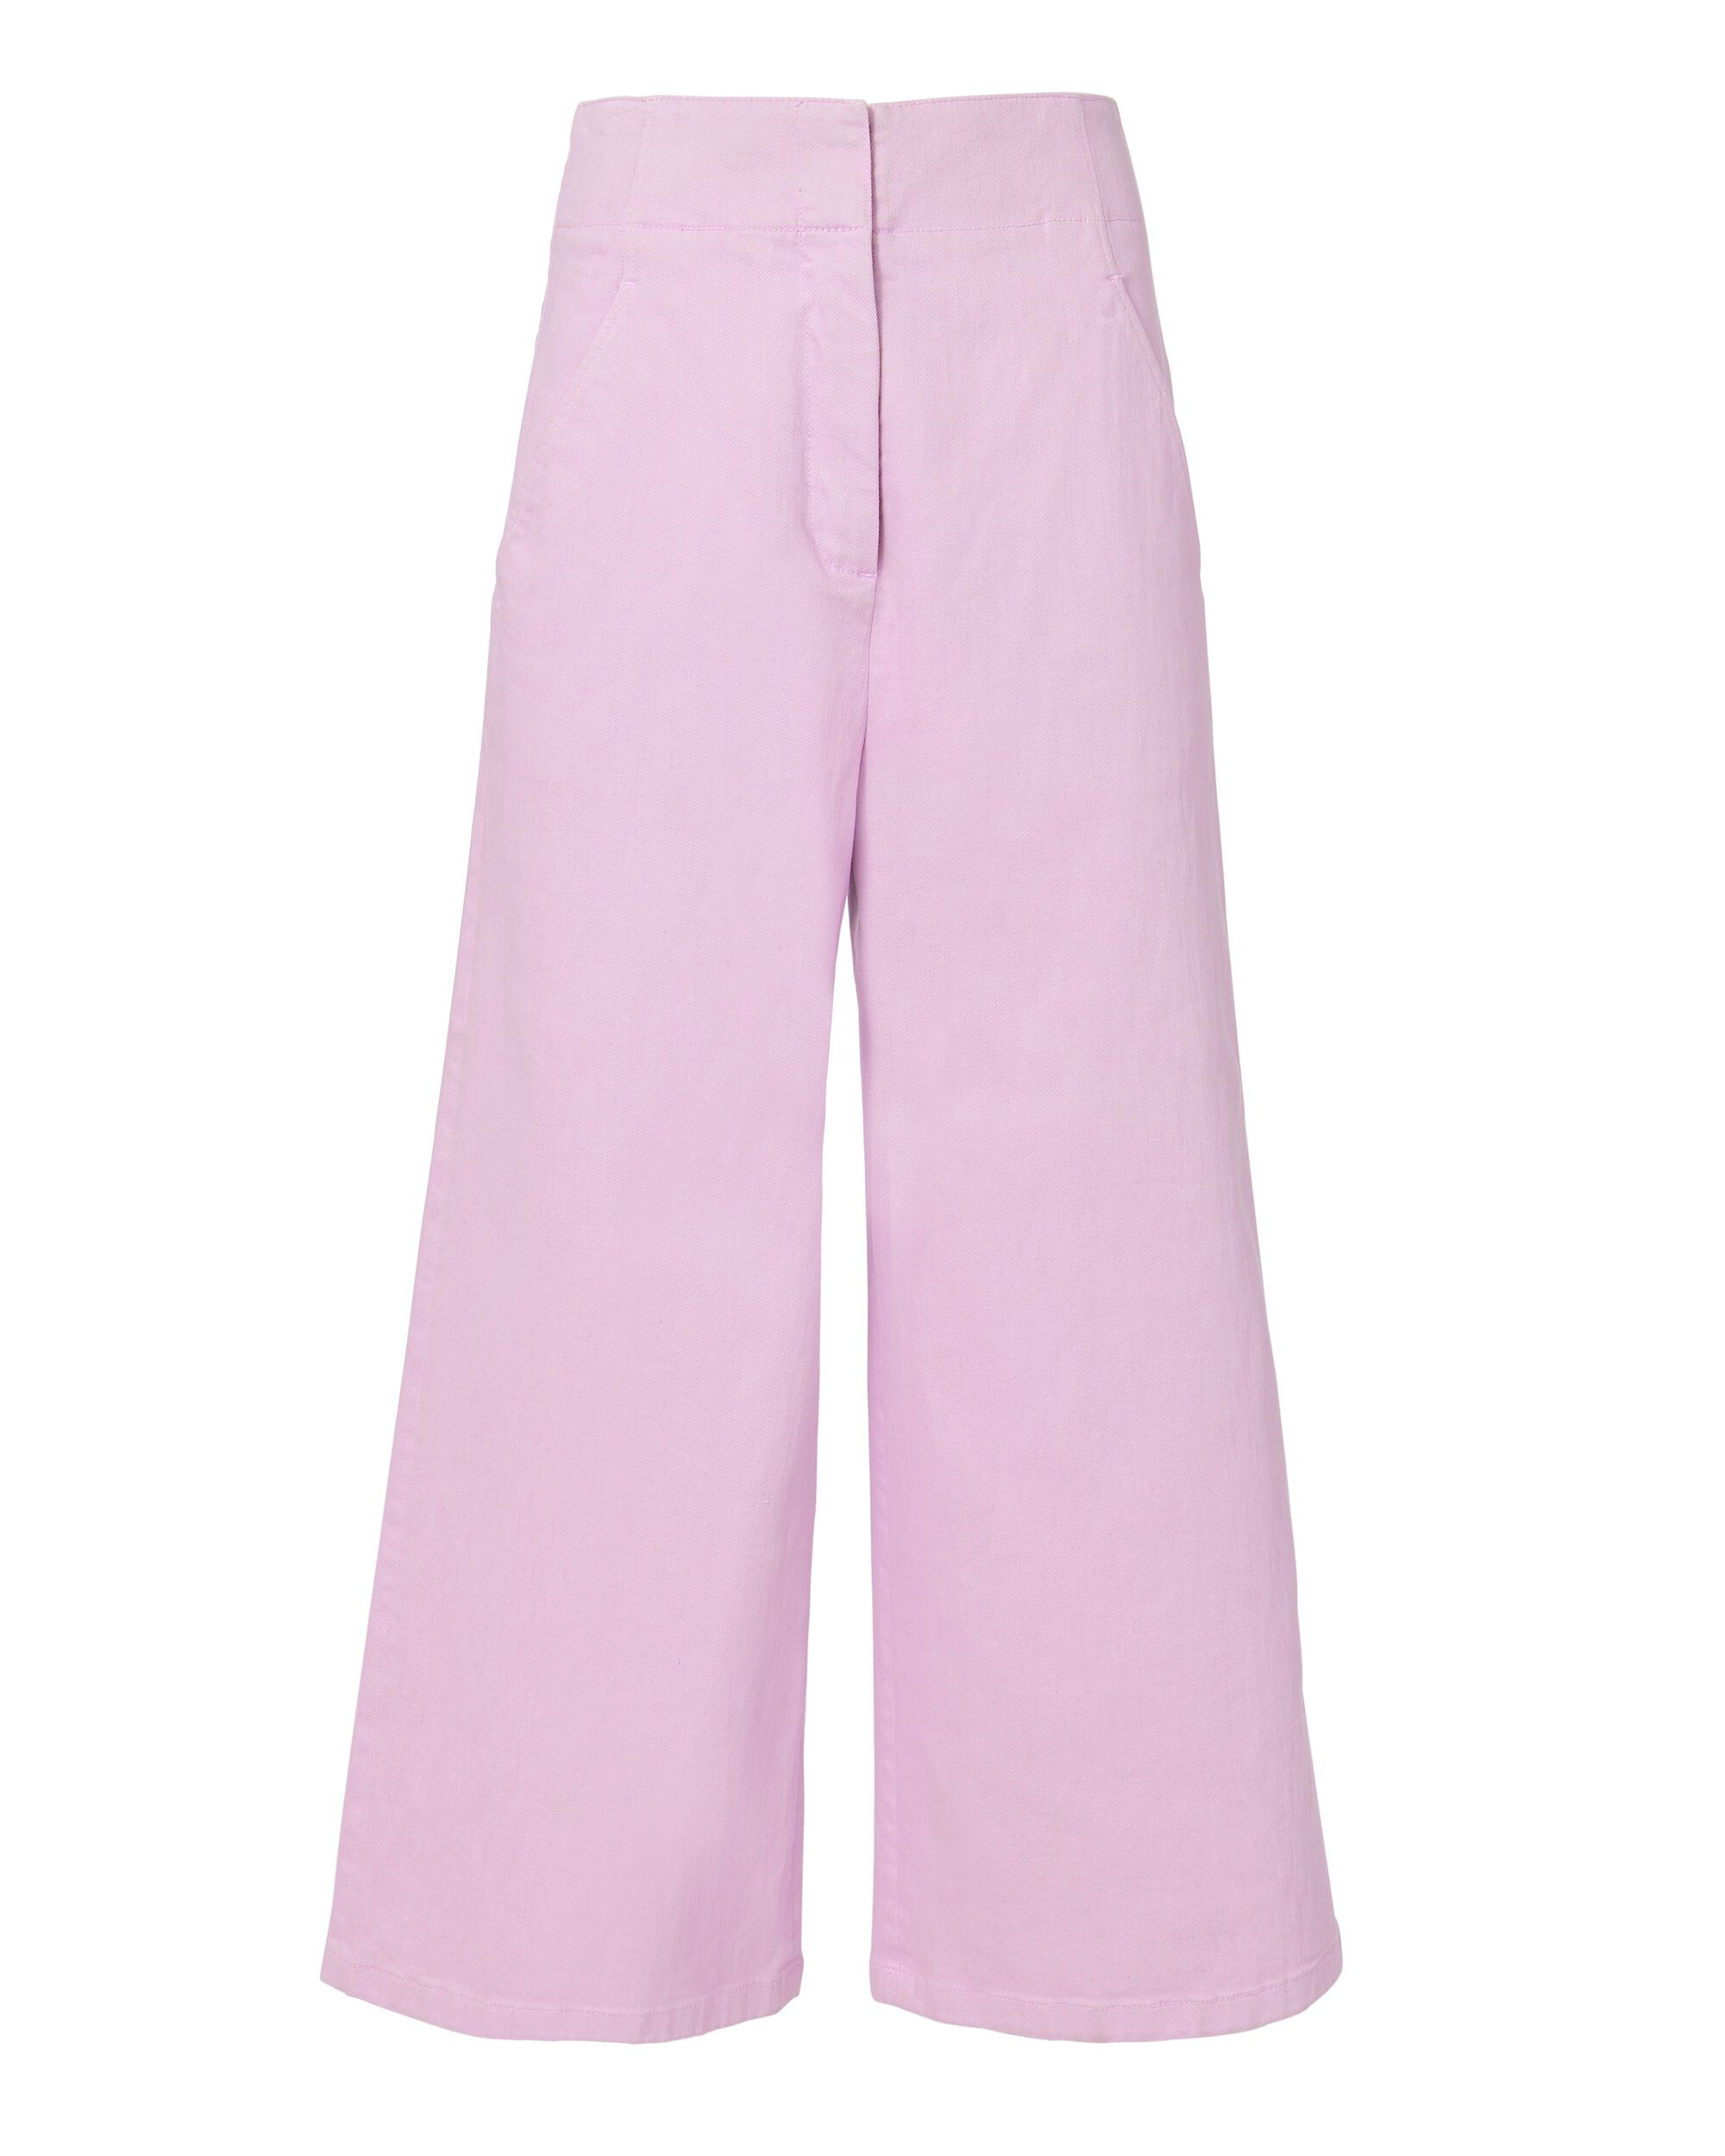 Twill Wide Leg Cropped Jeans, PURPLE-LT, hi-res